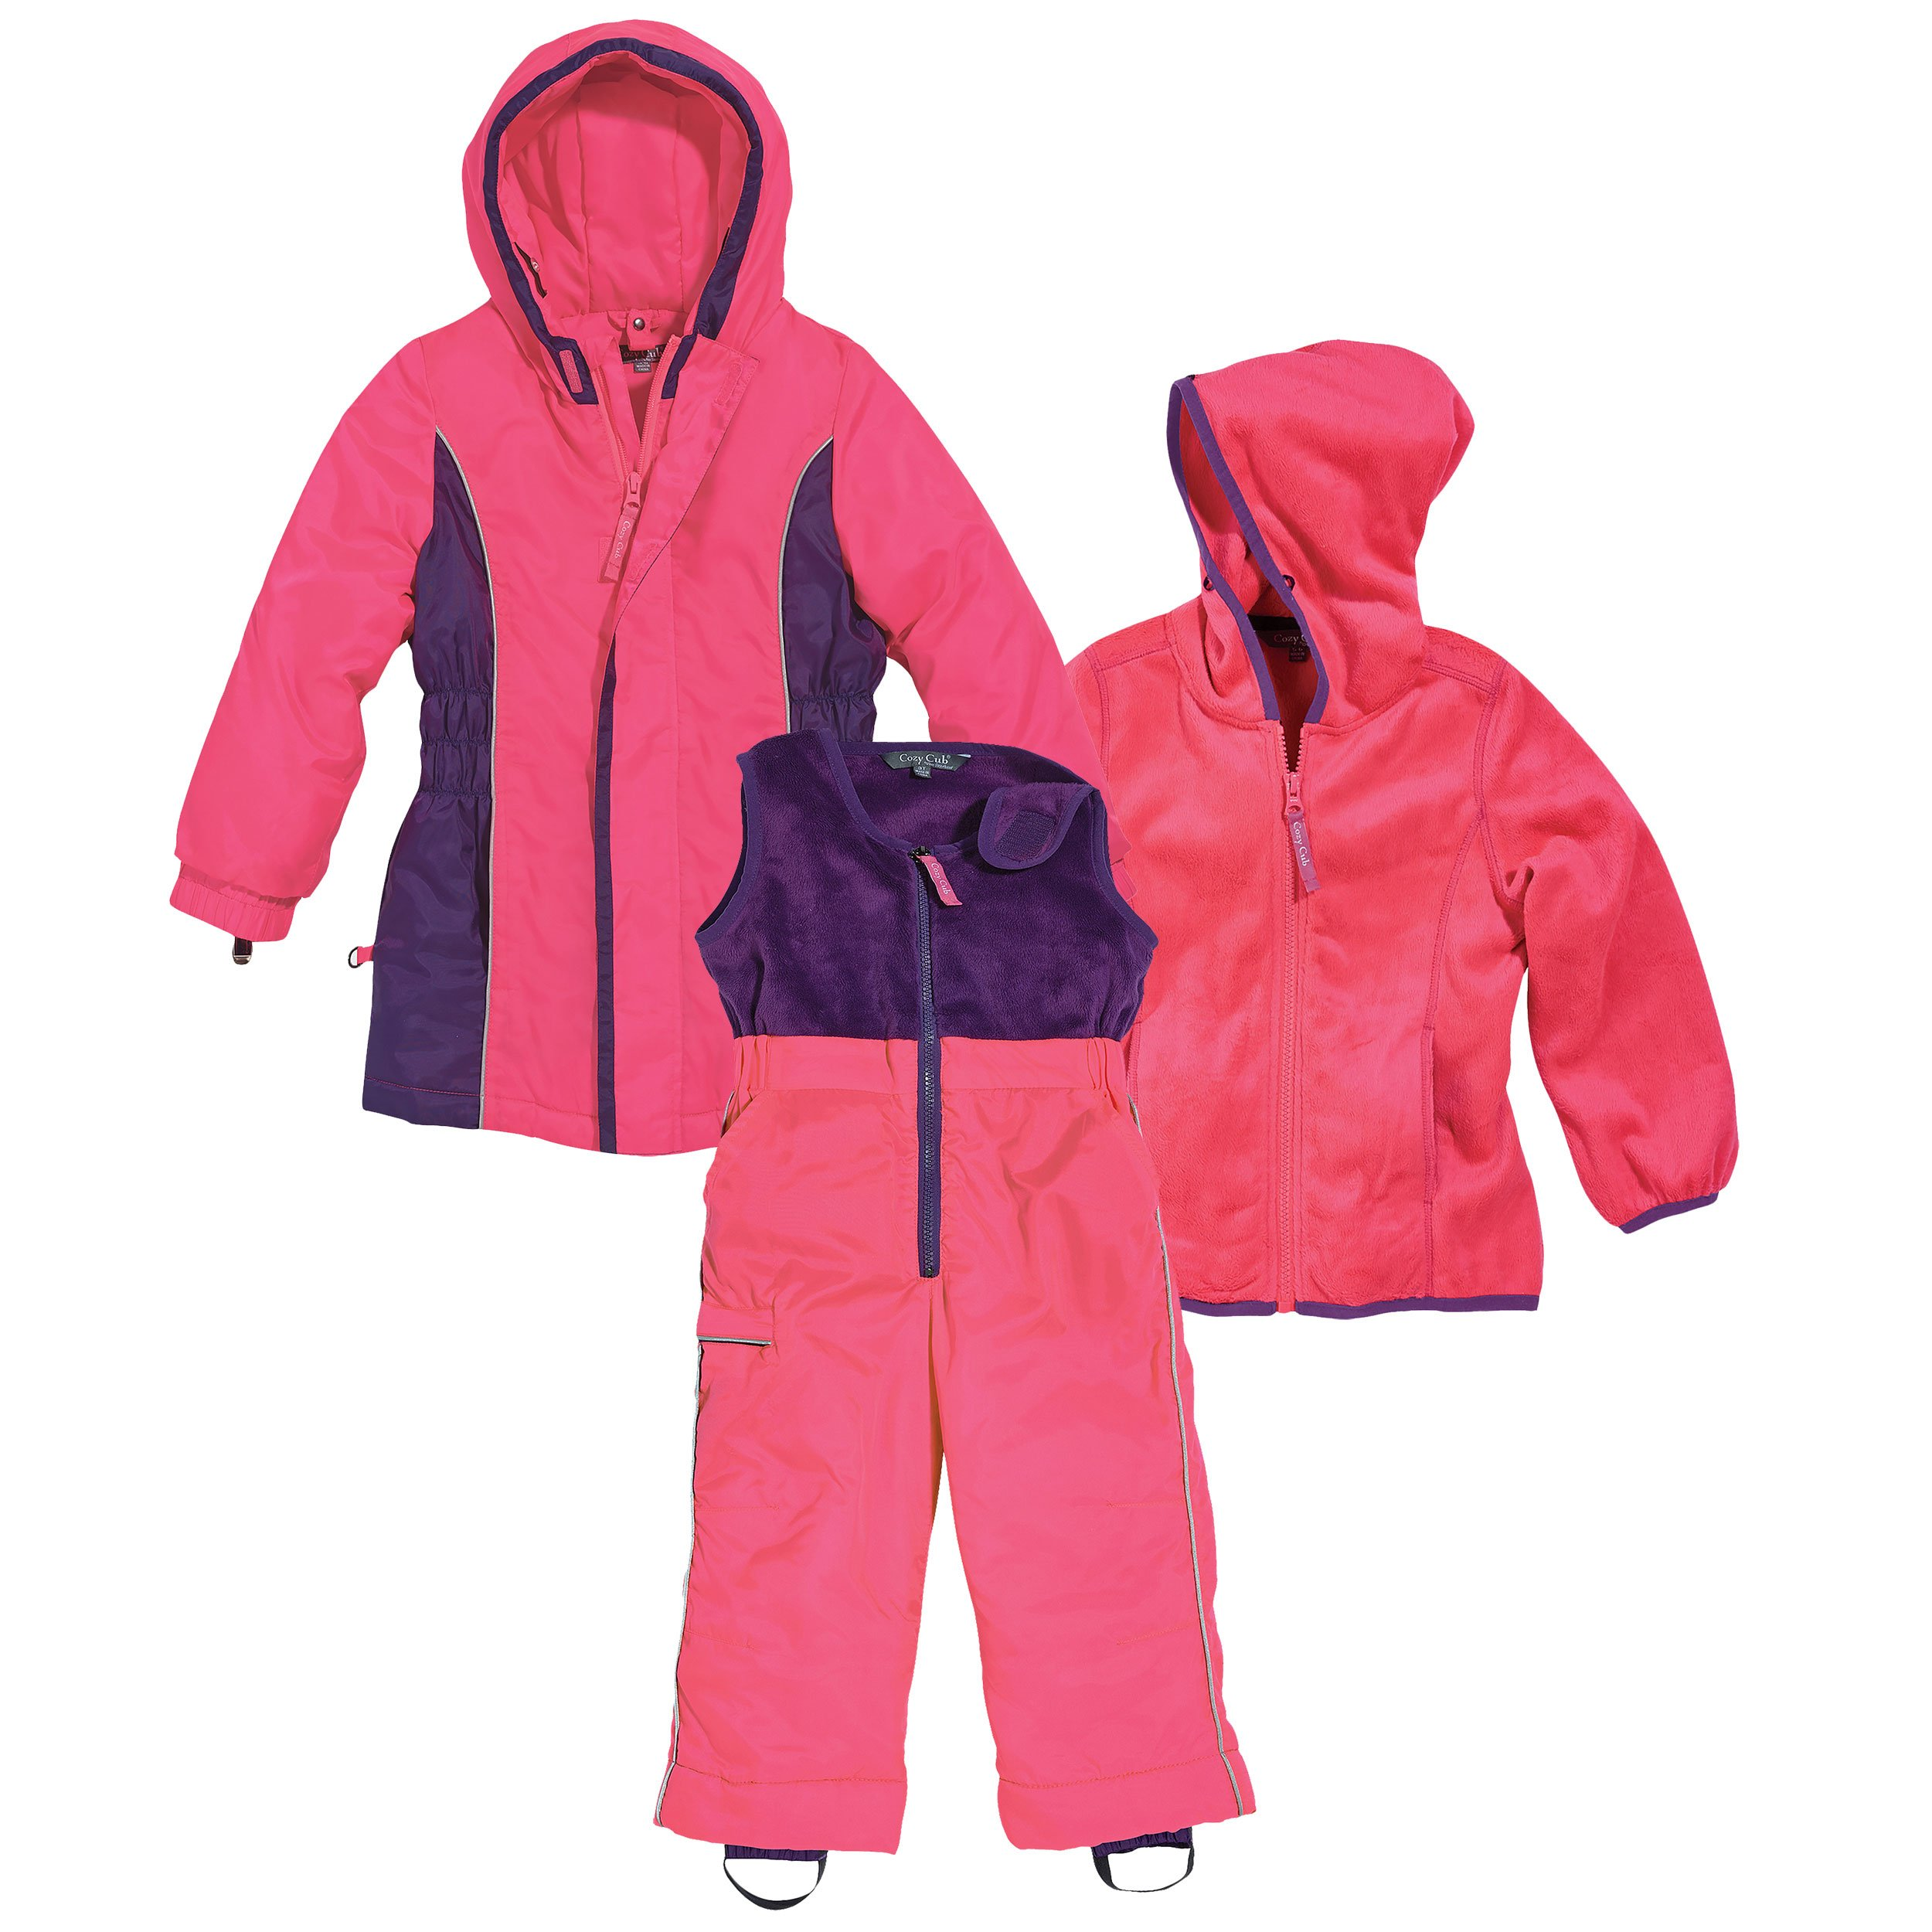 Pink and Purple Girls 3 Piece Winter Snow Suit by Cozy Cub, 18 Months